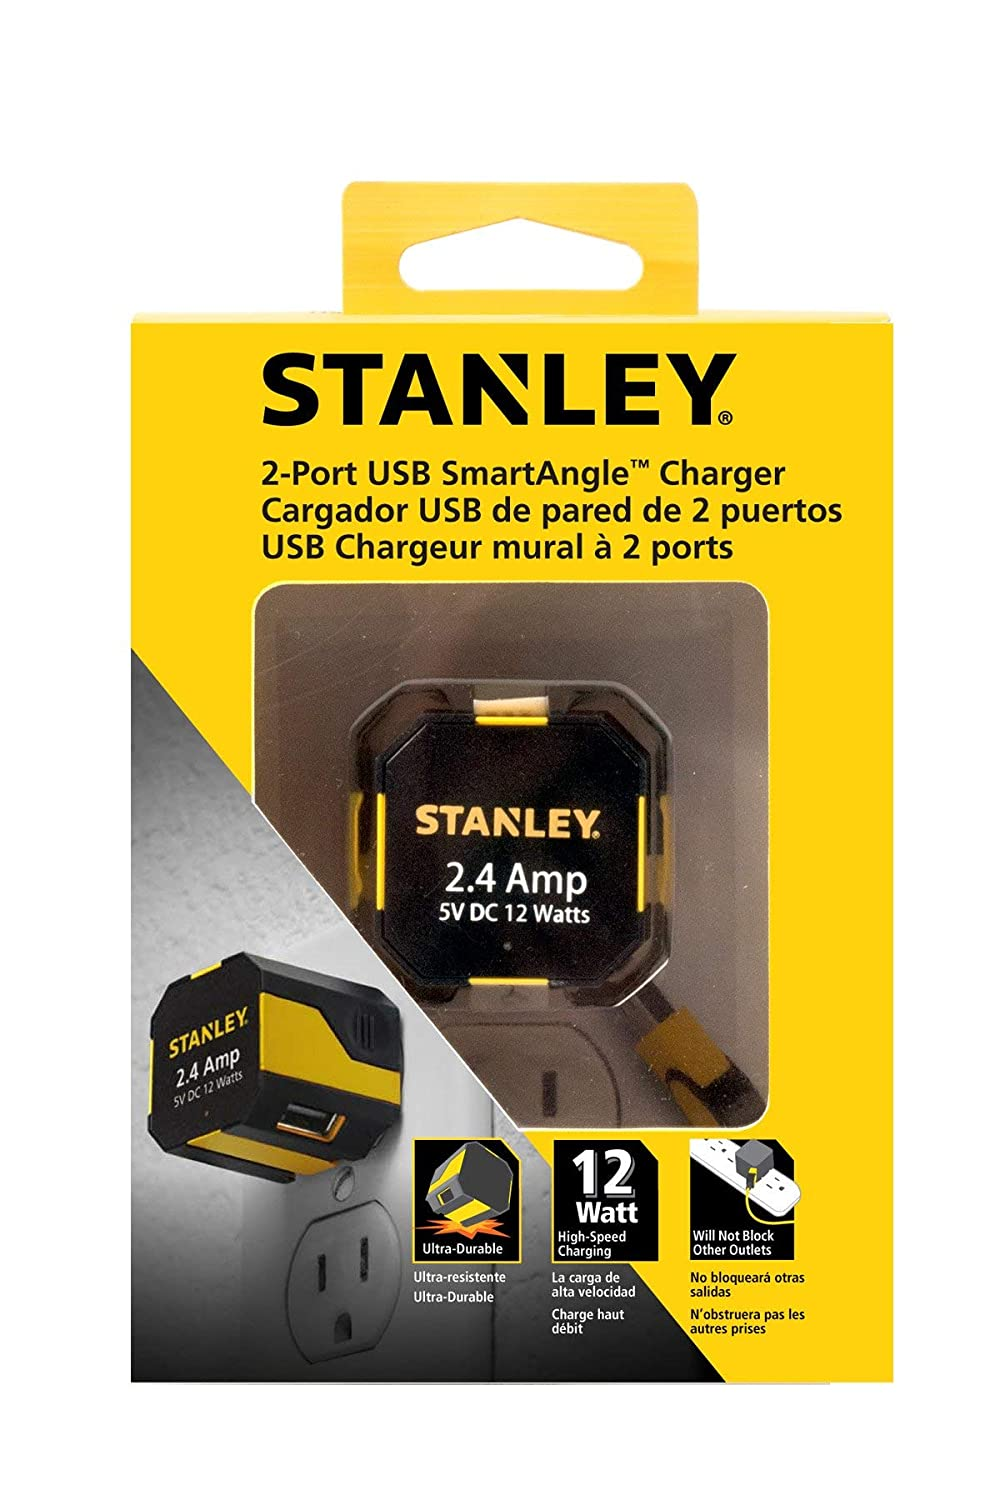 STANLEY 2-Port USB SmartAngle 2.4A 12W Wall Charger